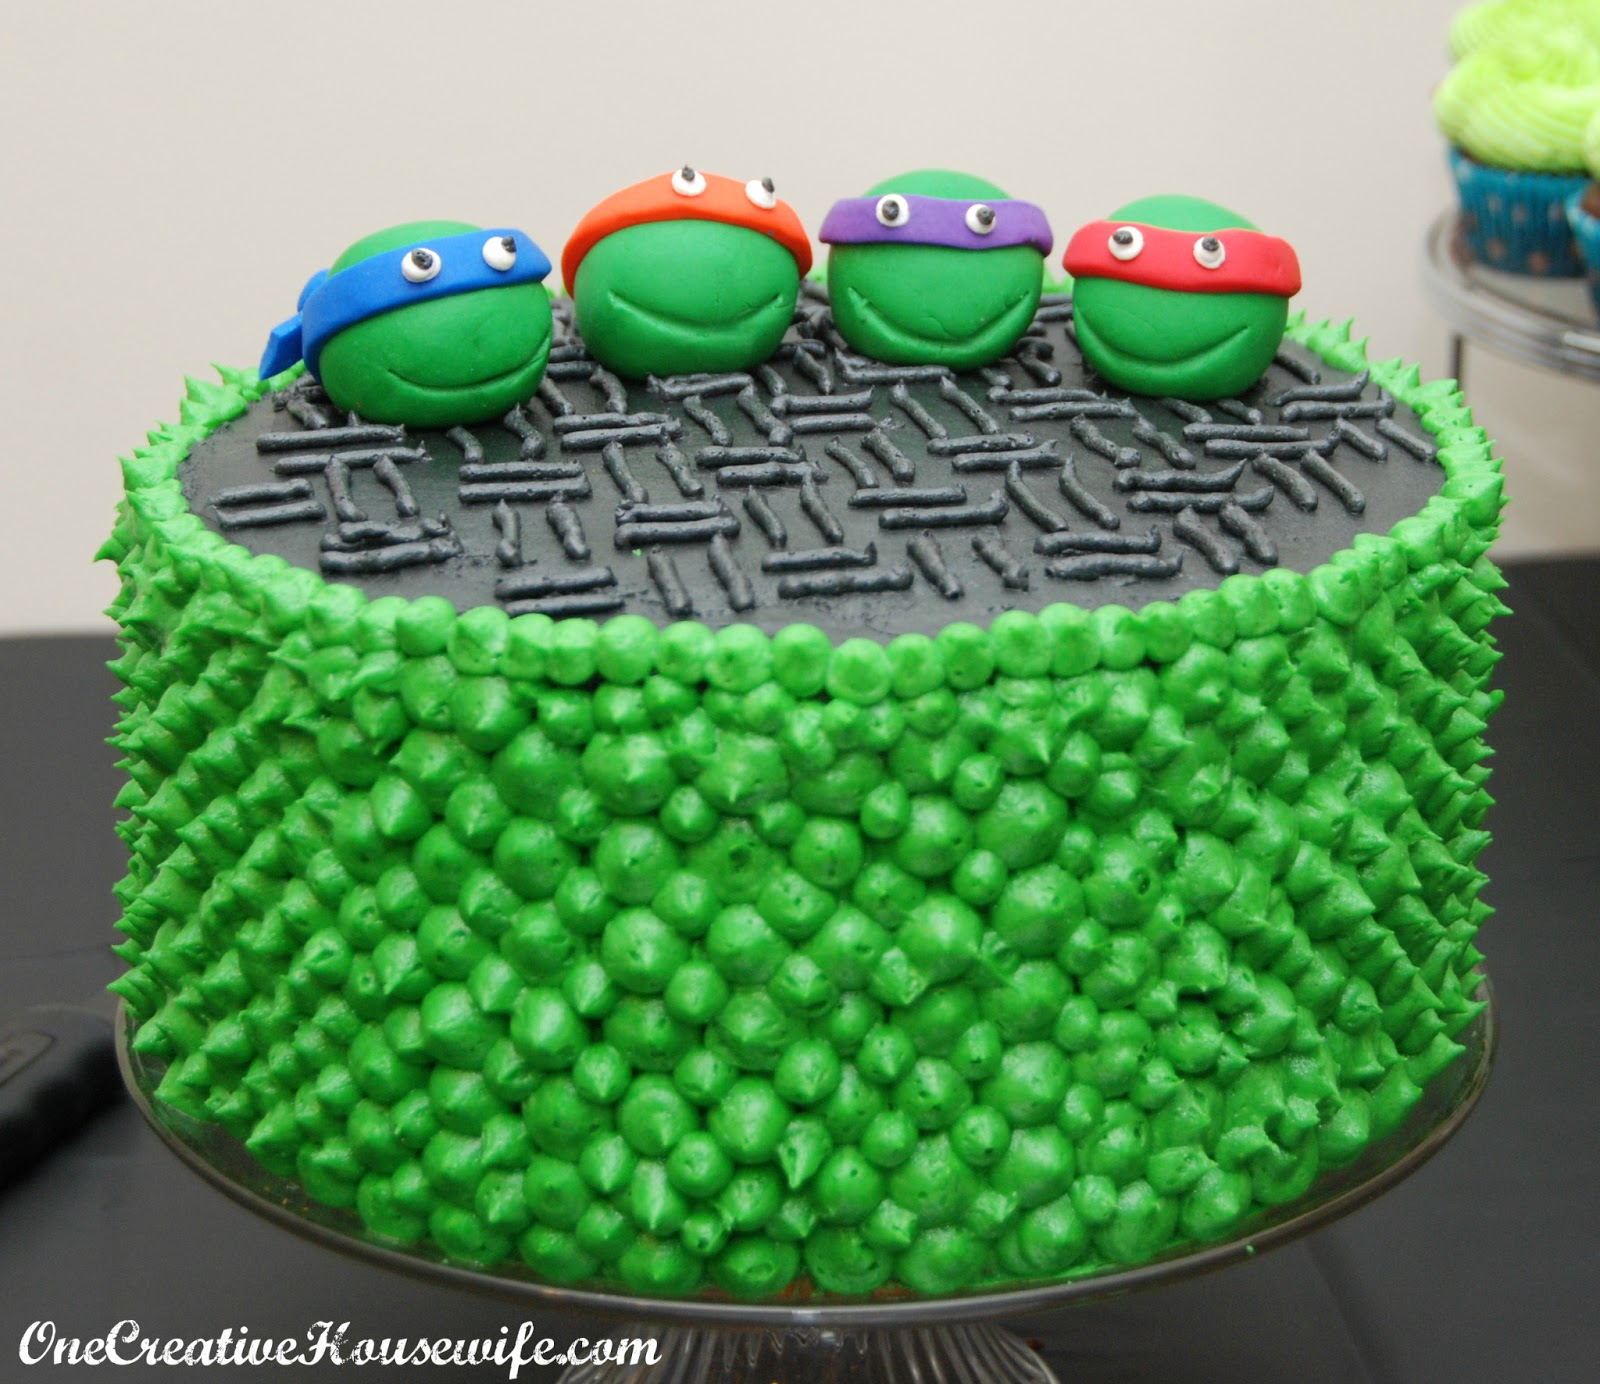 One Creative Housewife Teenage Mutant Ninja Turtle Party Part 2